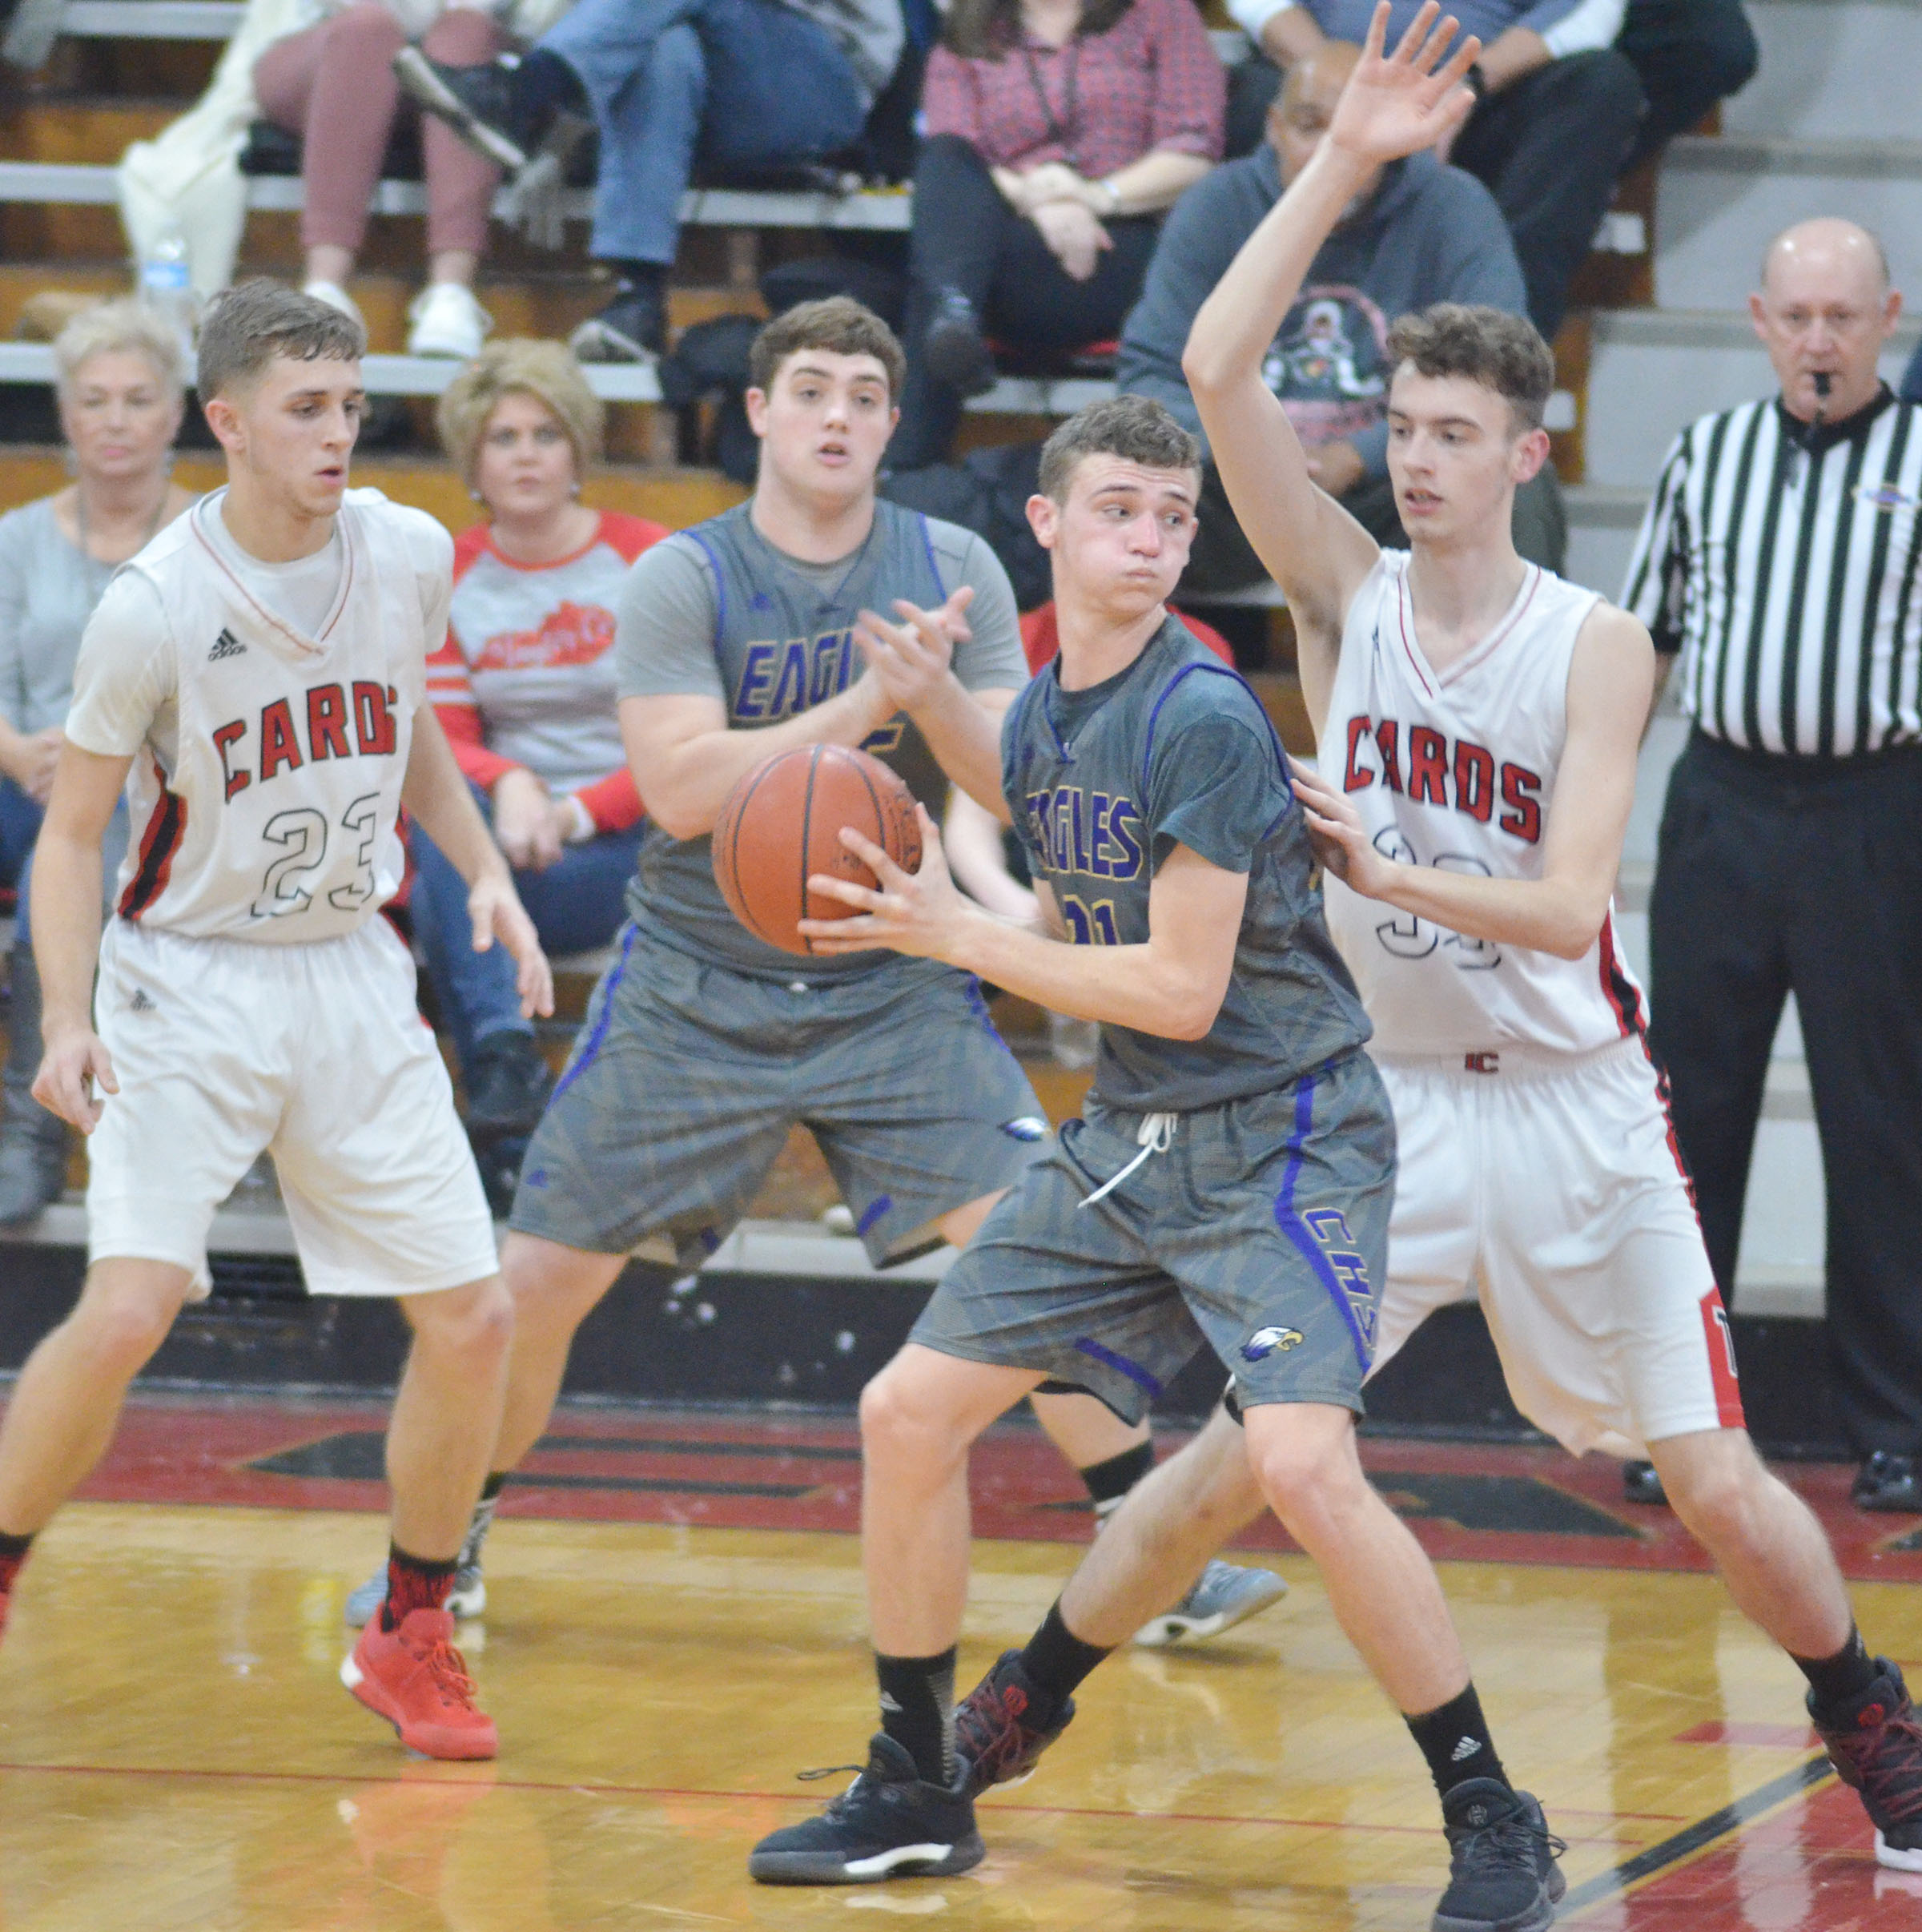 CHS junior Connor Wilson protects the ball.